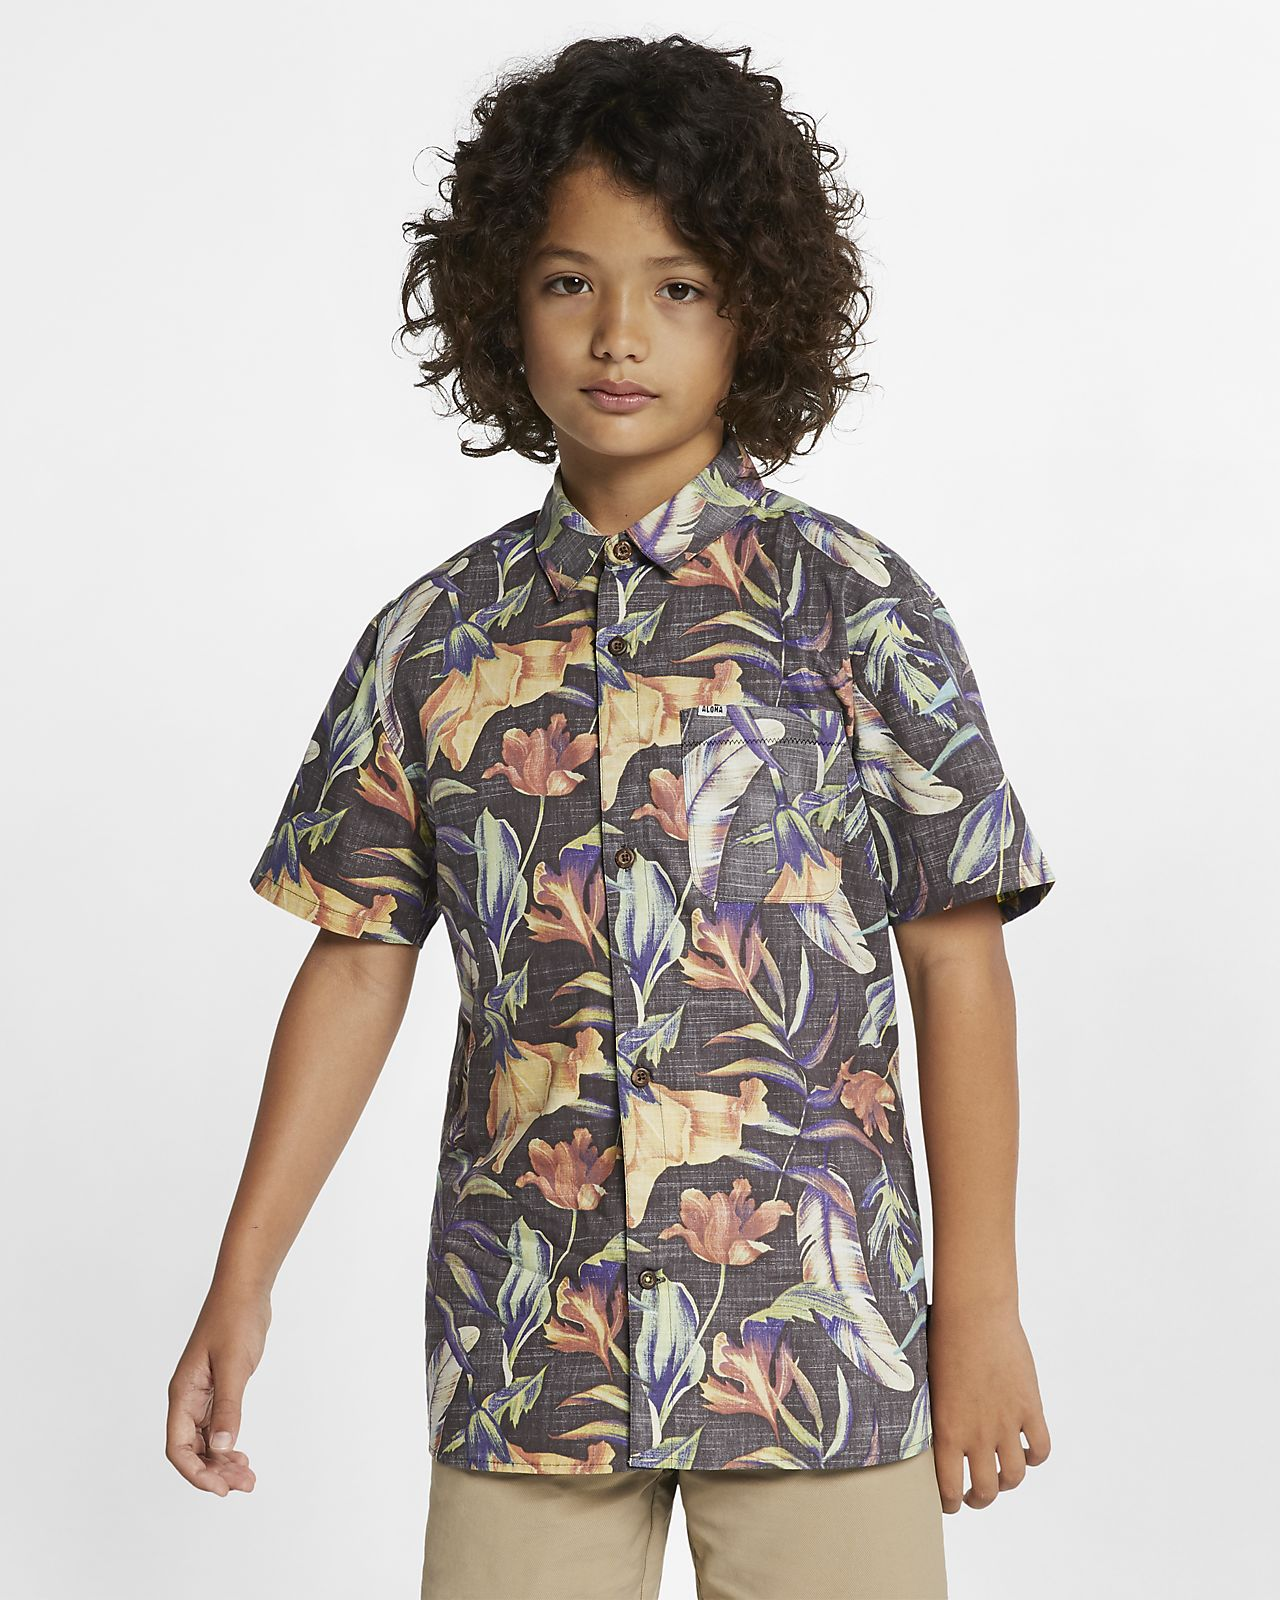 Hurley Fat Cap Boys' Button-Down Top